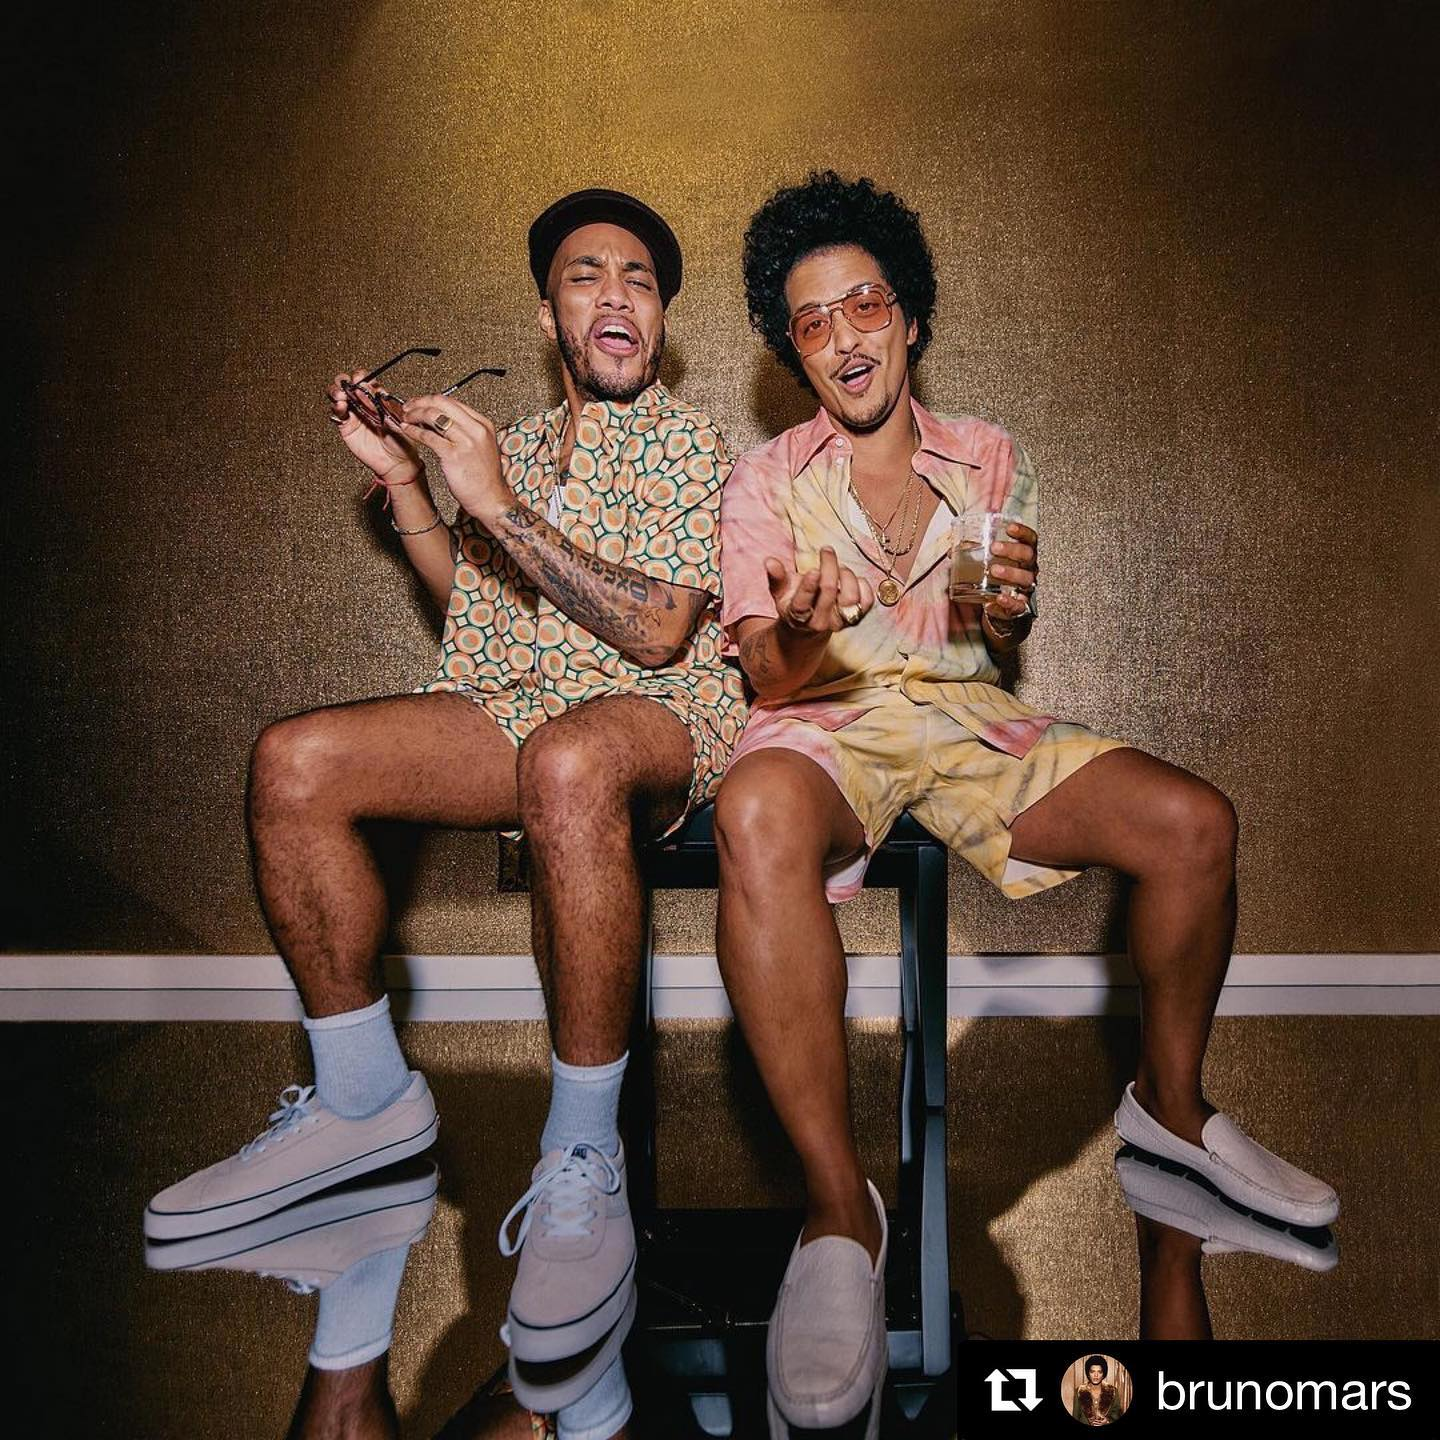 "Thanks, Bruno, for making me laugh this week with all your extra silliness and shenanigans! 🤣🤣 Much needed. #ichoosebeauty Day 2664 #Repost @brunomars・・・Lacoste: ""Bruno, if you want the clothes to sell we need to hire ridiculously good looking models."" Me: ""BET!"""